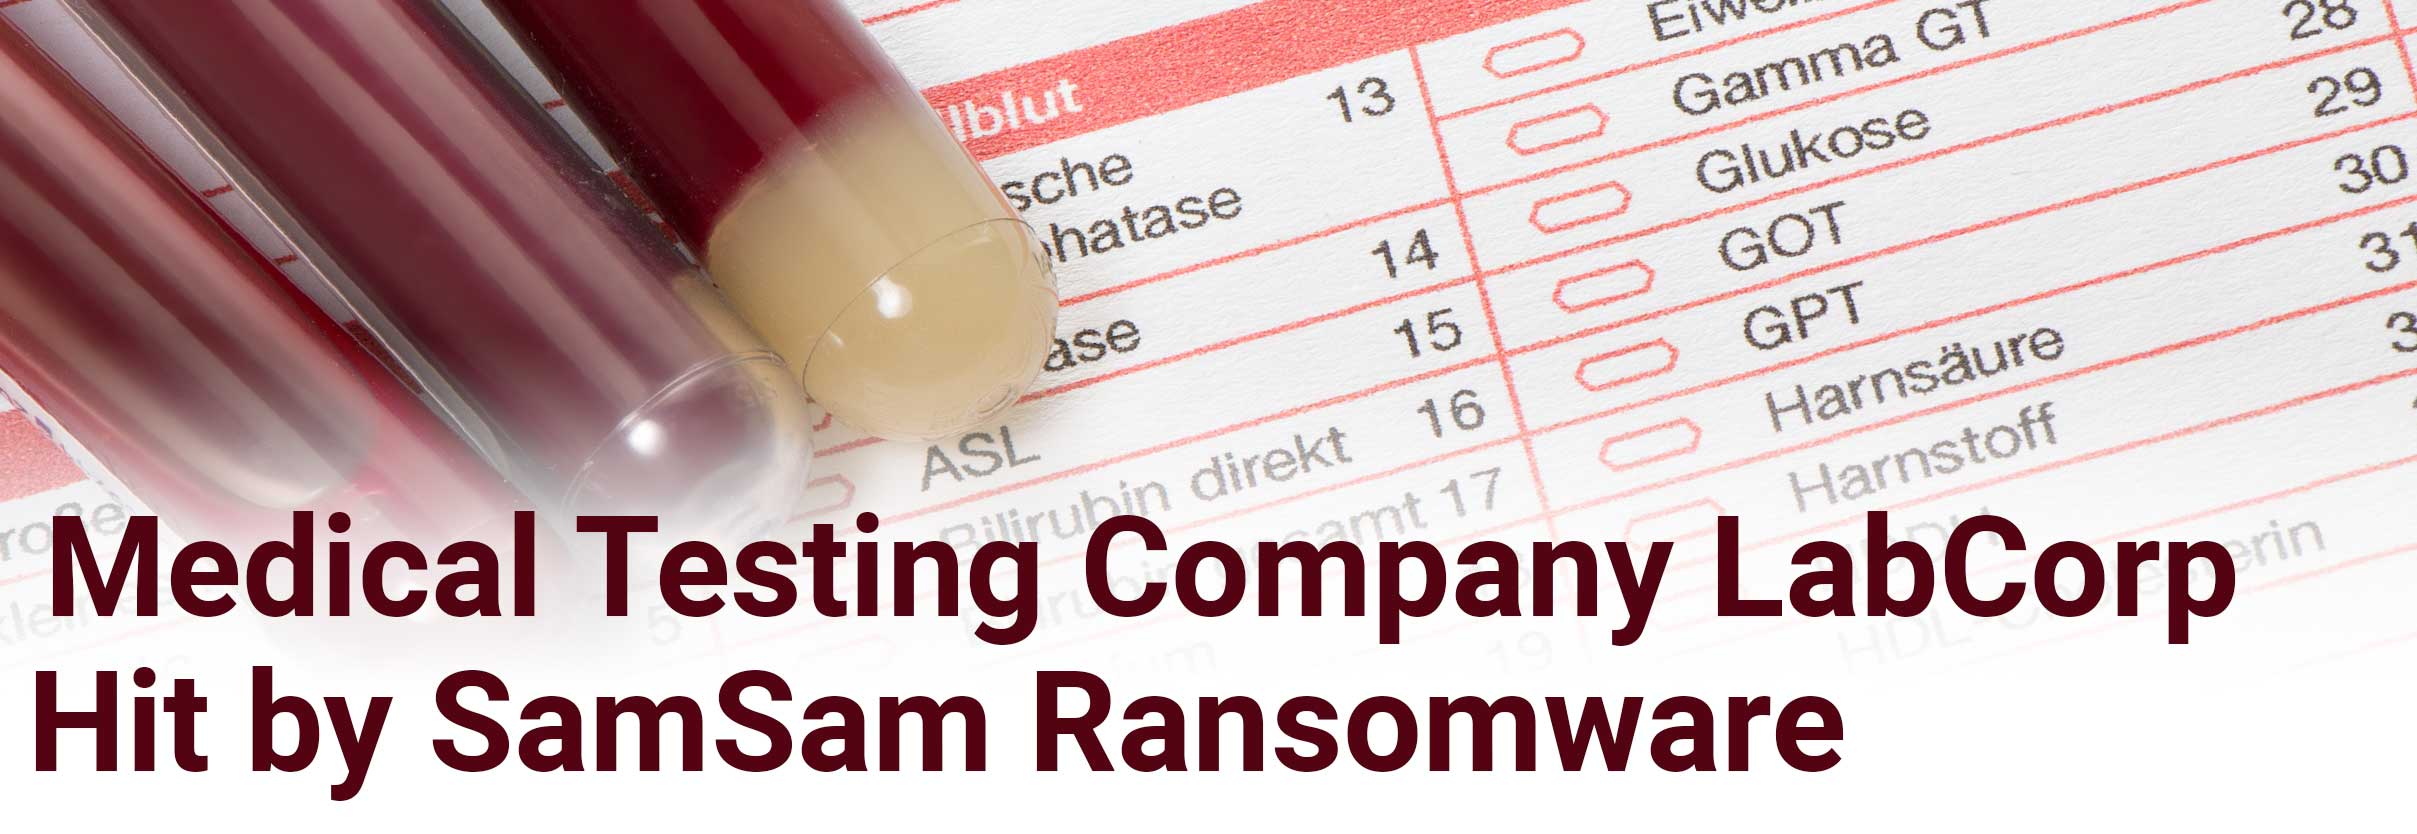 Medical Testing Company LabCorp Becomes Victim of Ransomware Cyberattack